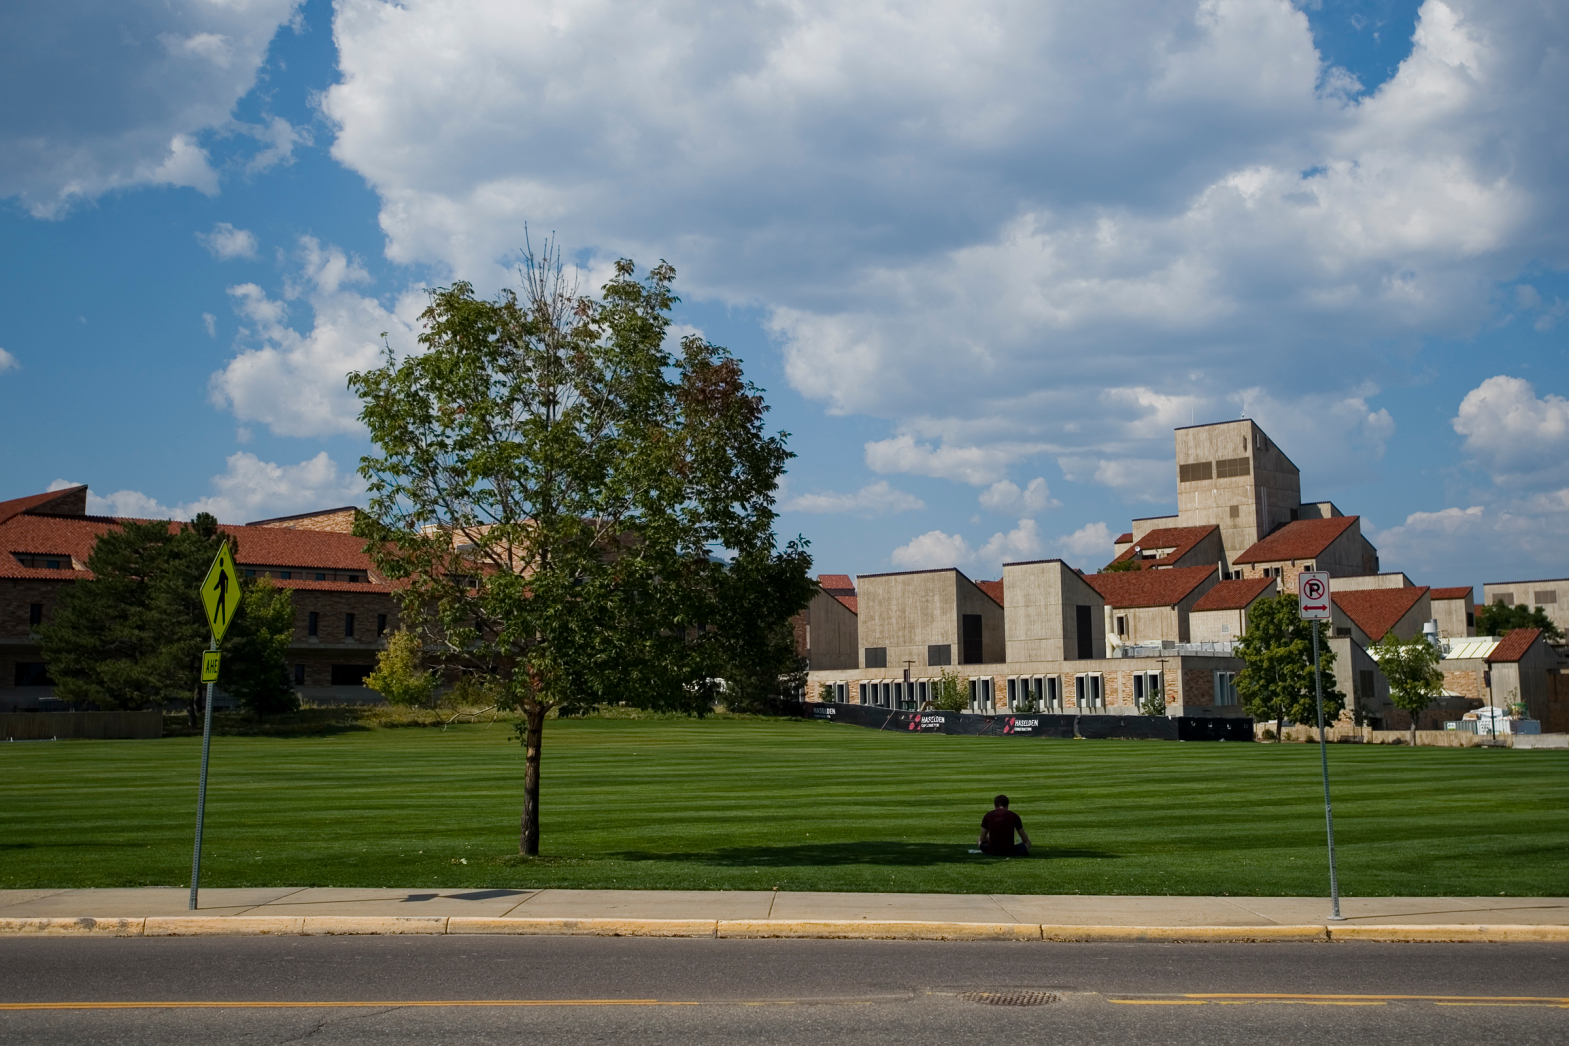 A University of Colorado Boulder student studies in the shade of a tree in front of Business Field with school buildings in the background.